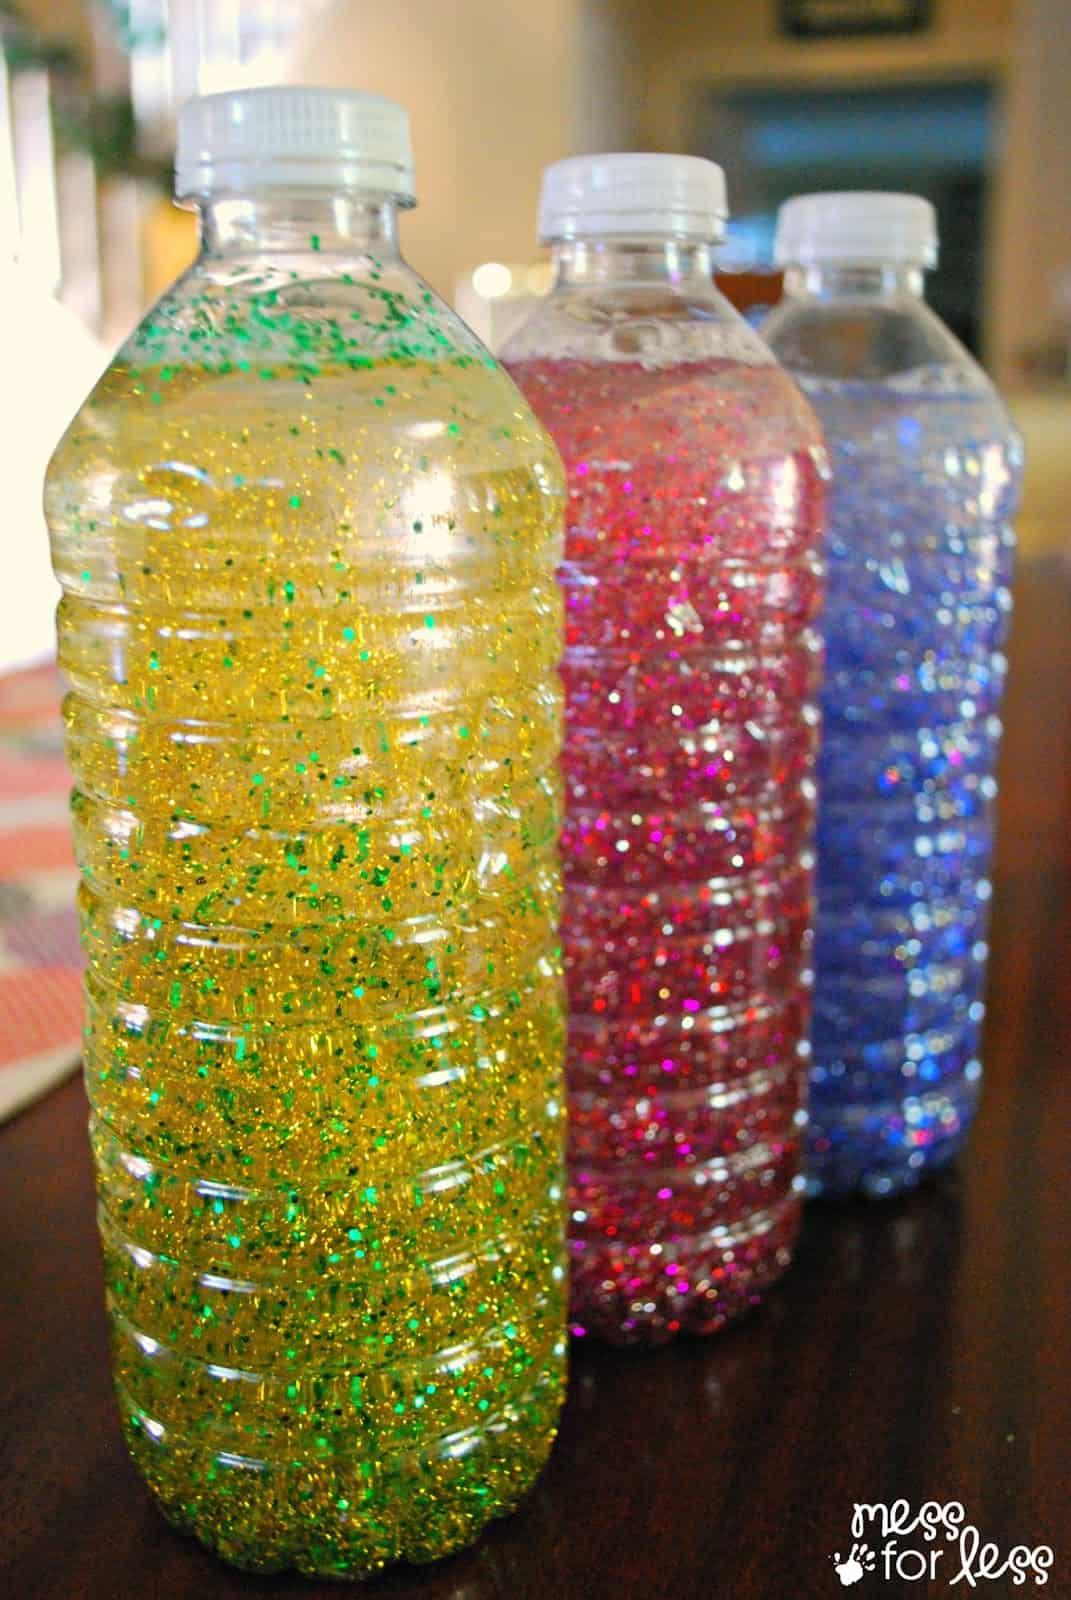 calming bottles mess for less